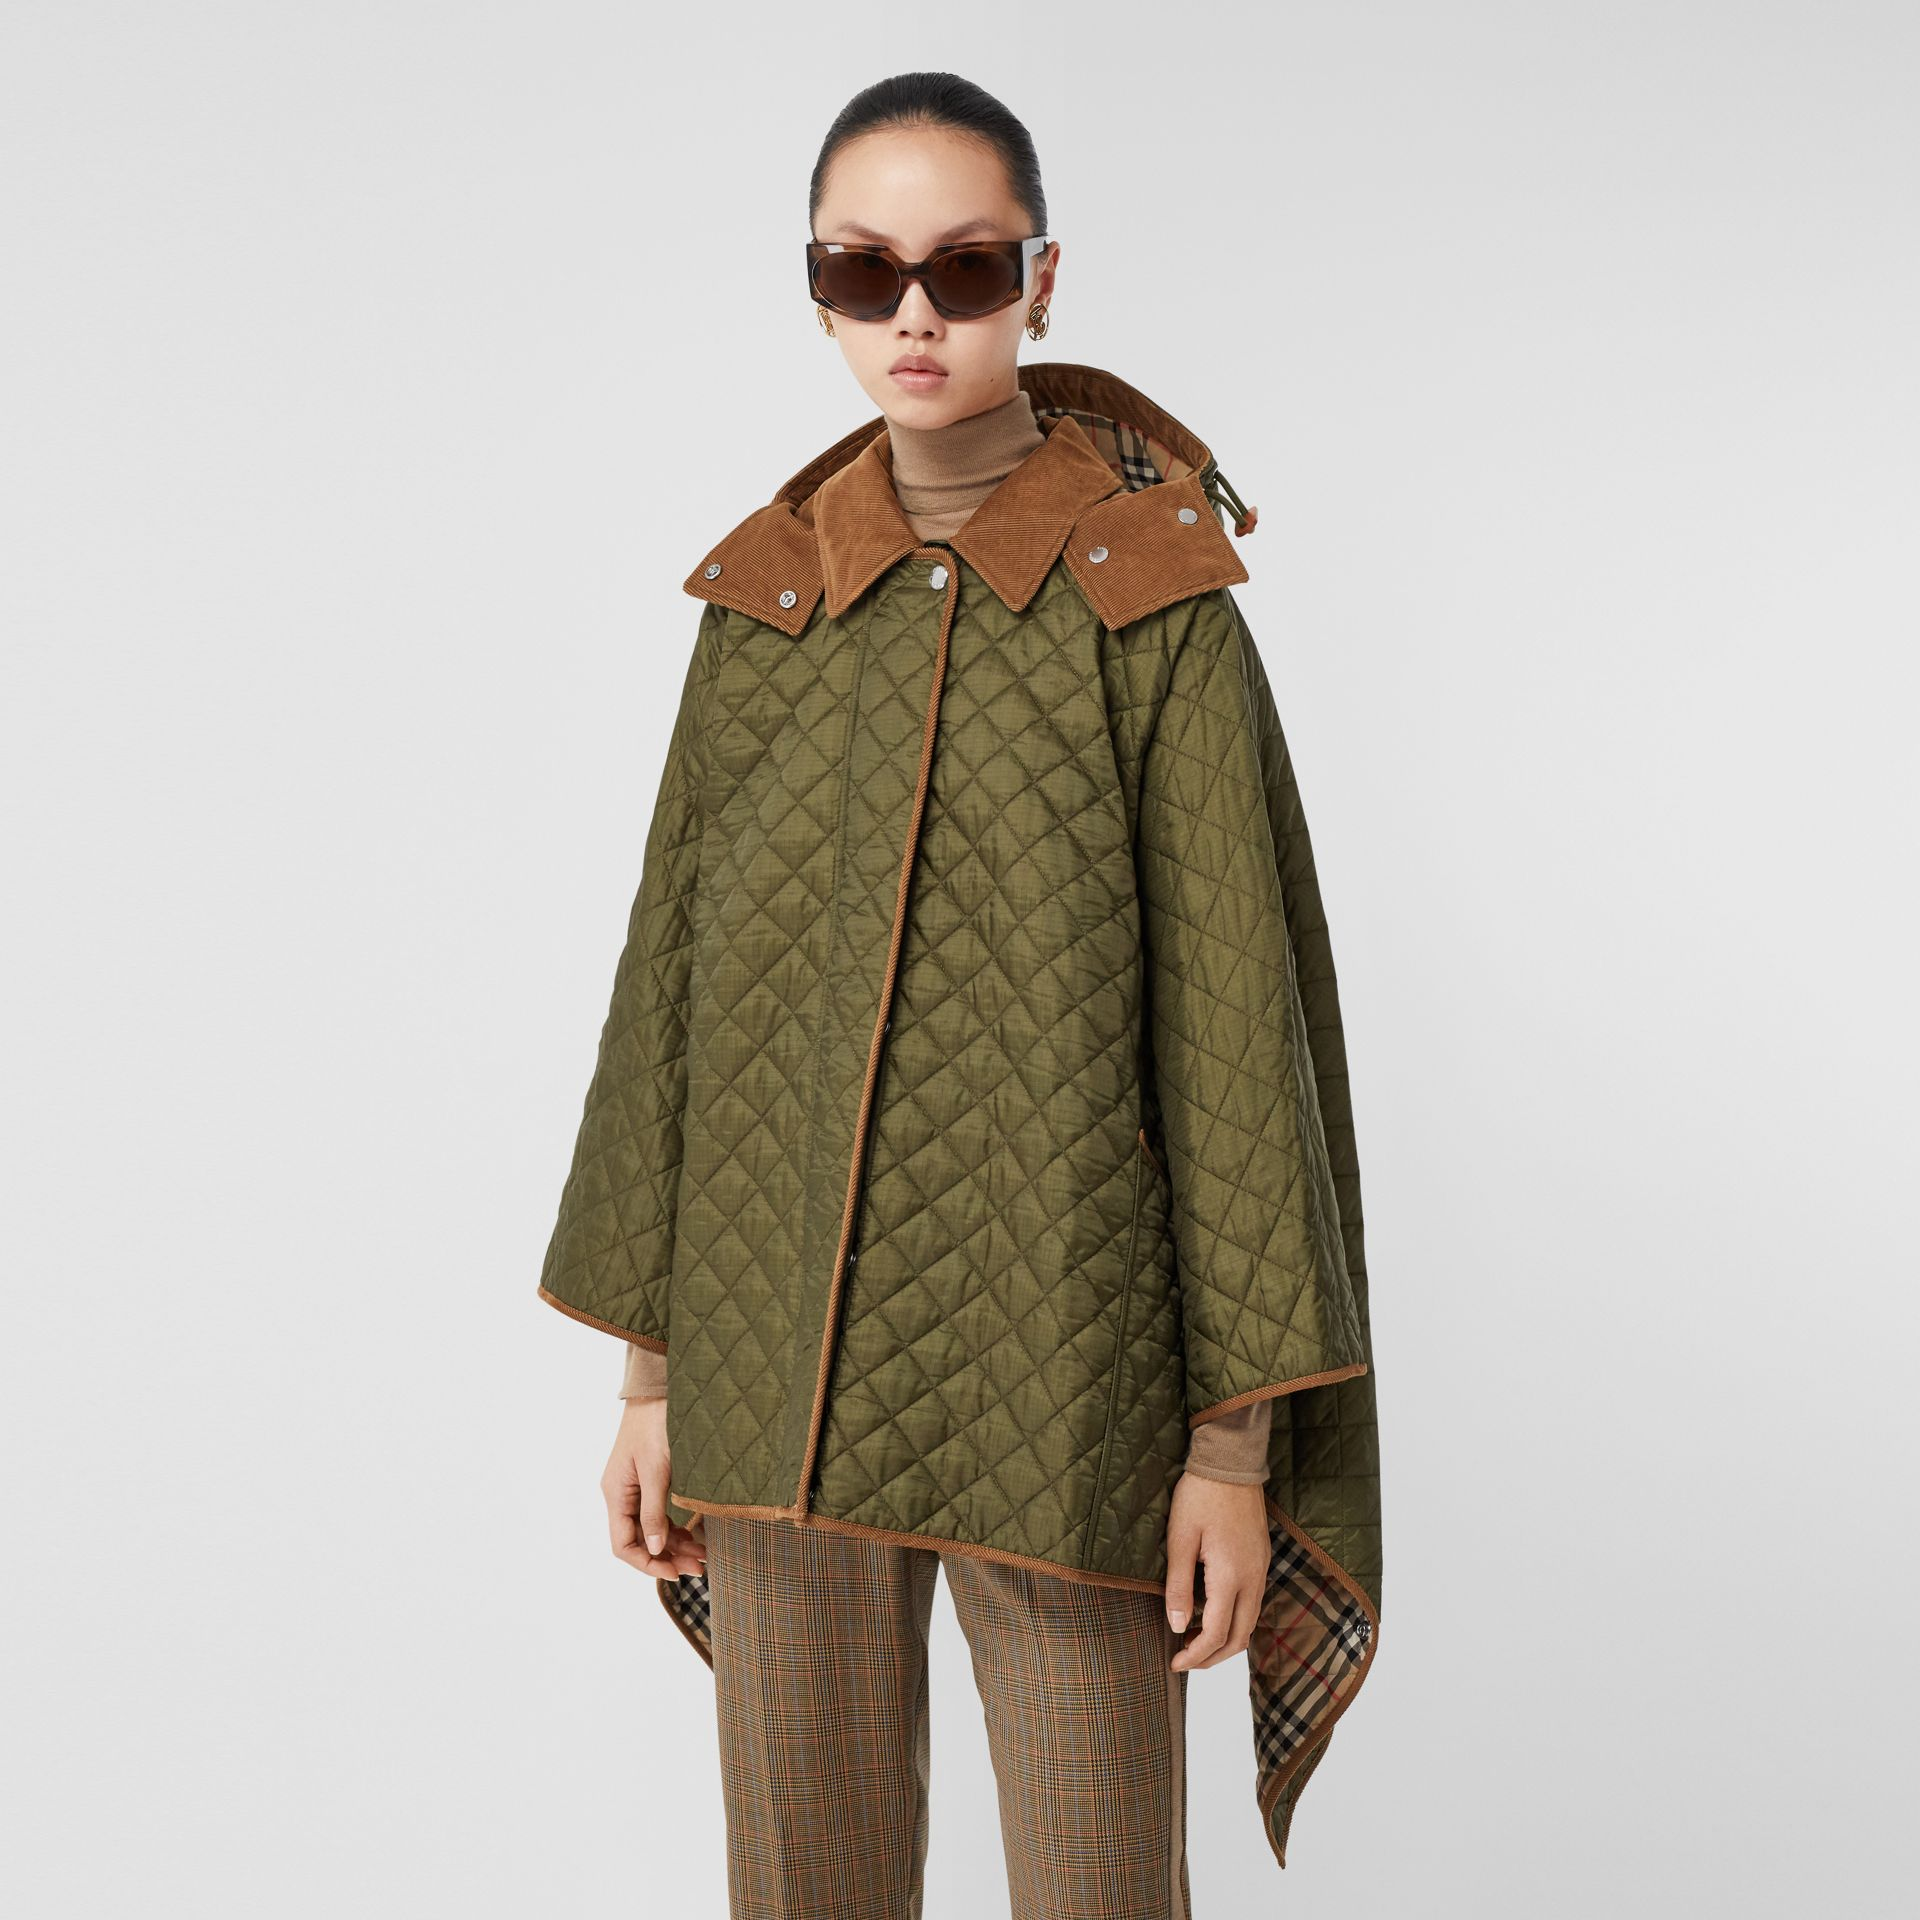 Corduroy Trim Quilted Hooded Cape in Military Olive - Women   Burberry United States - gallery image 6